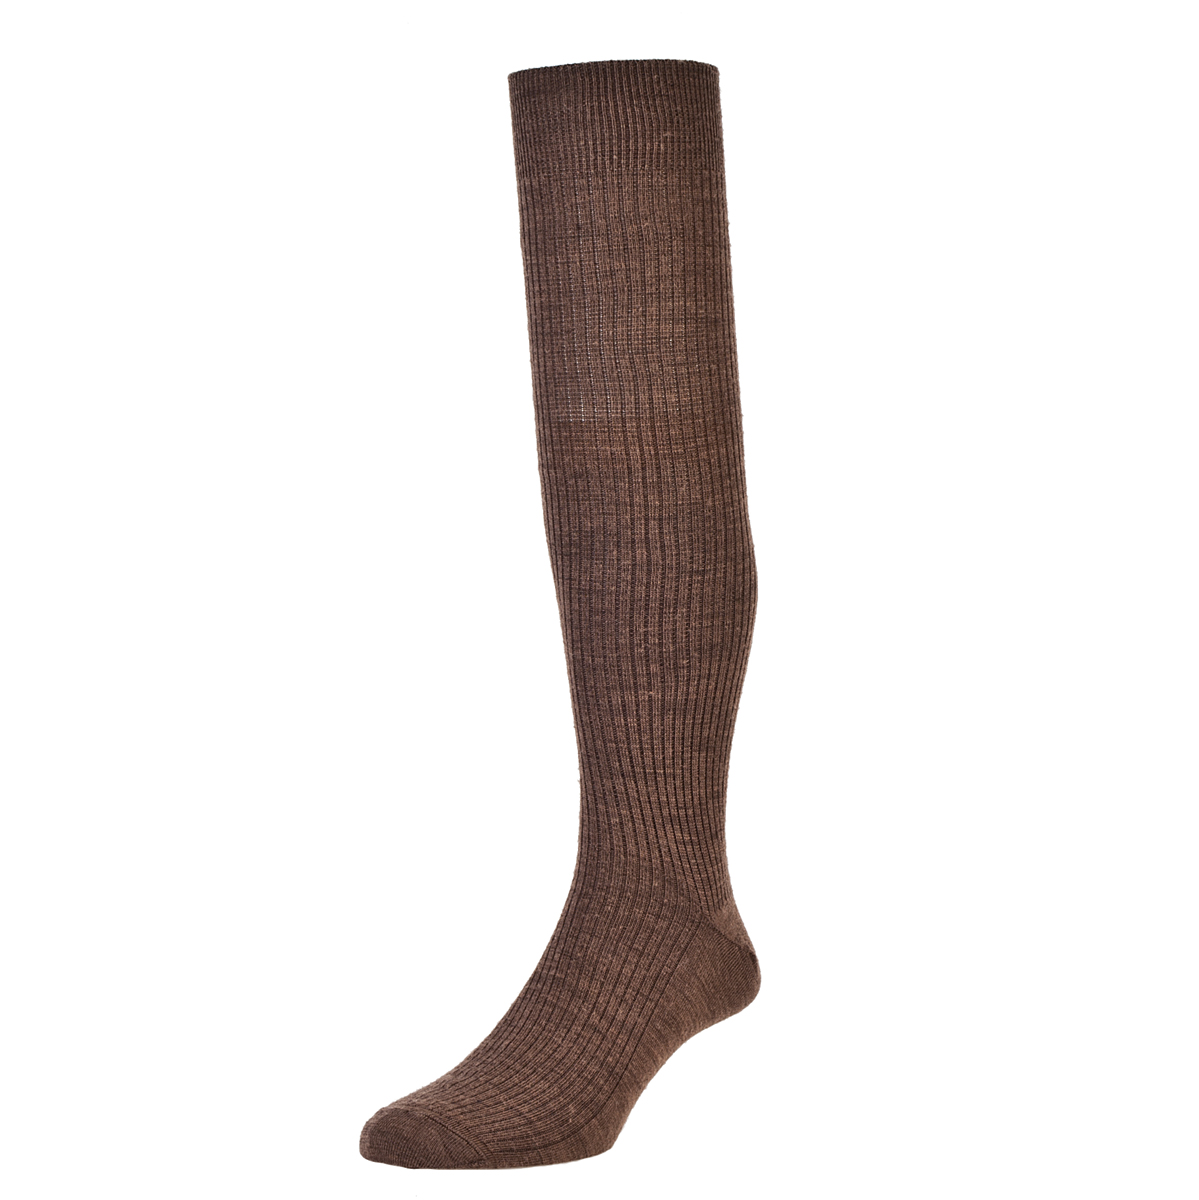 HJ Hall Immaculate Long Knee length Mens Socks size 6-11UK Taupe HJ77